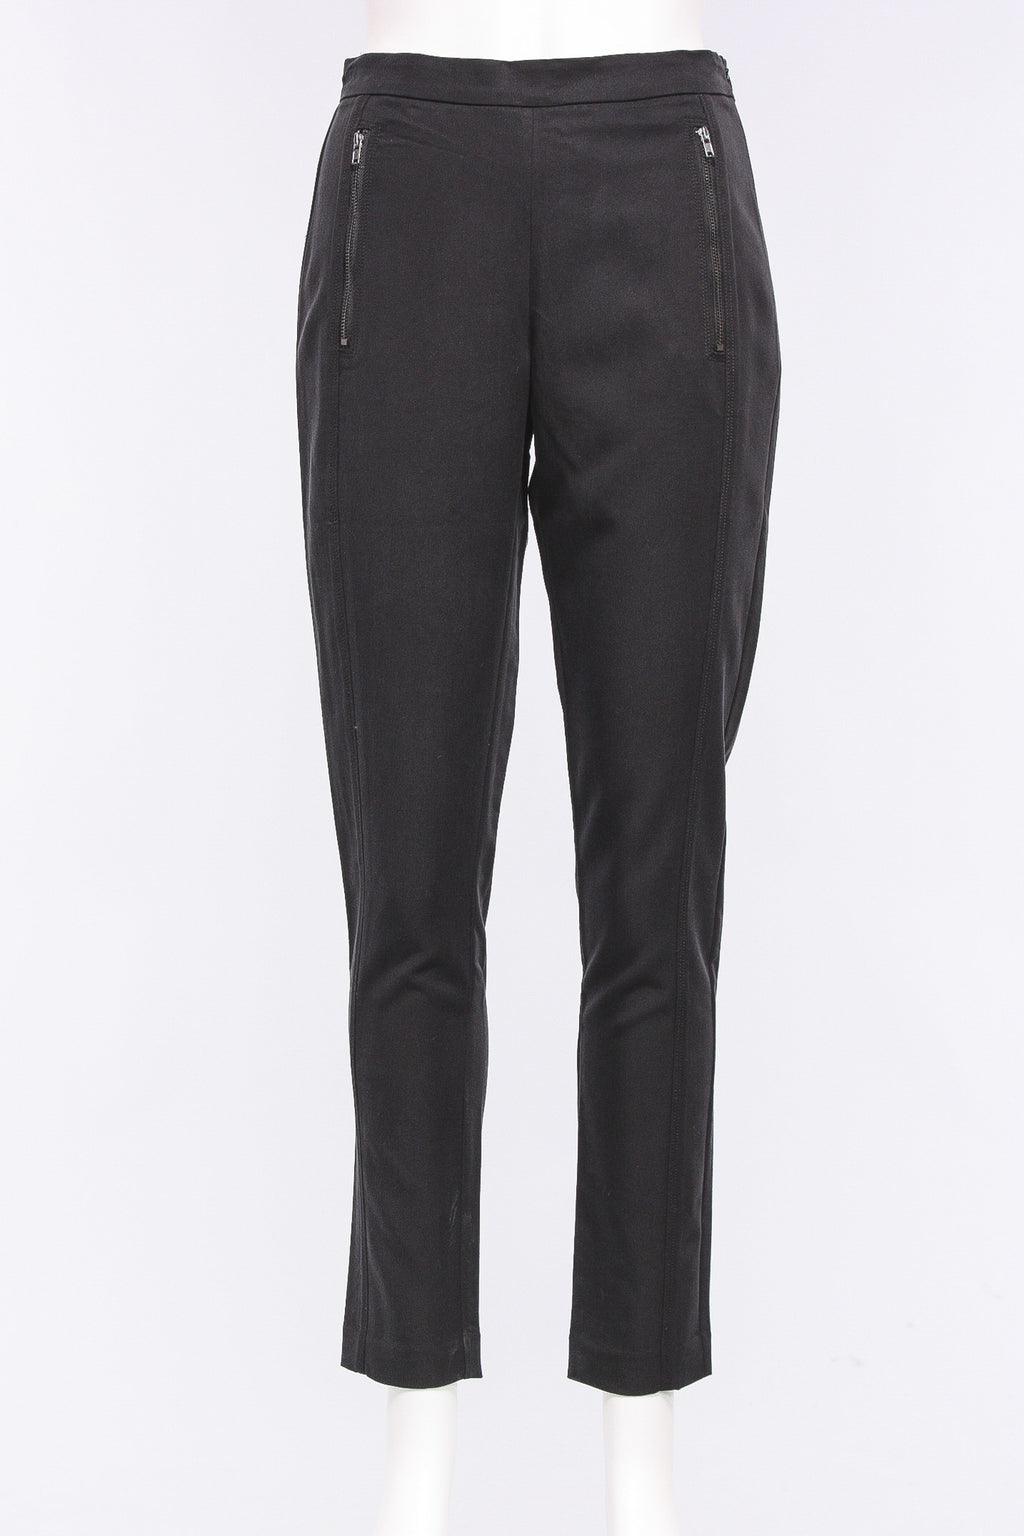 On The Line Ankle Pant in Black